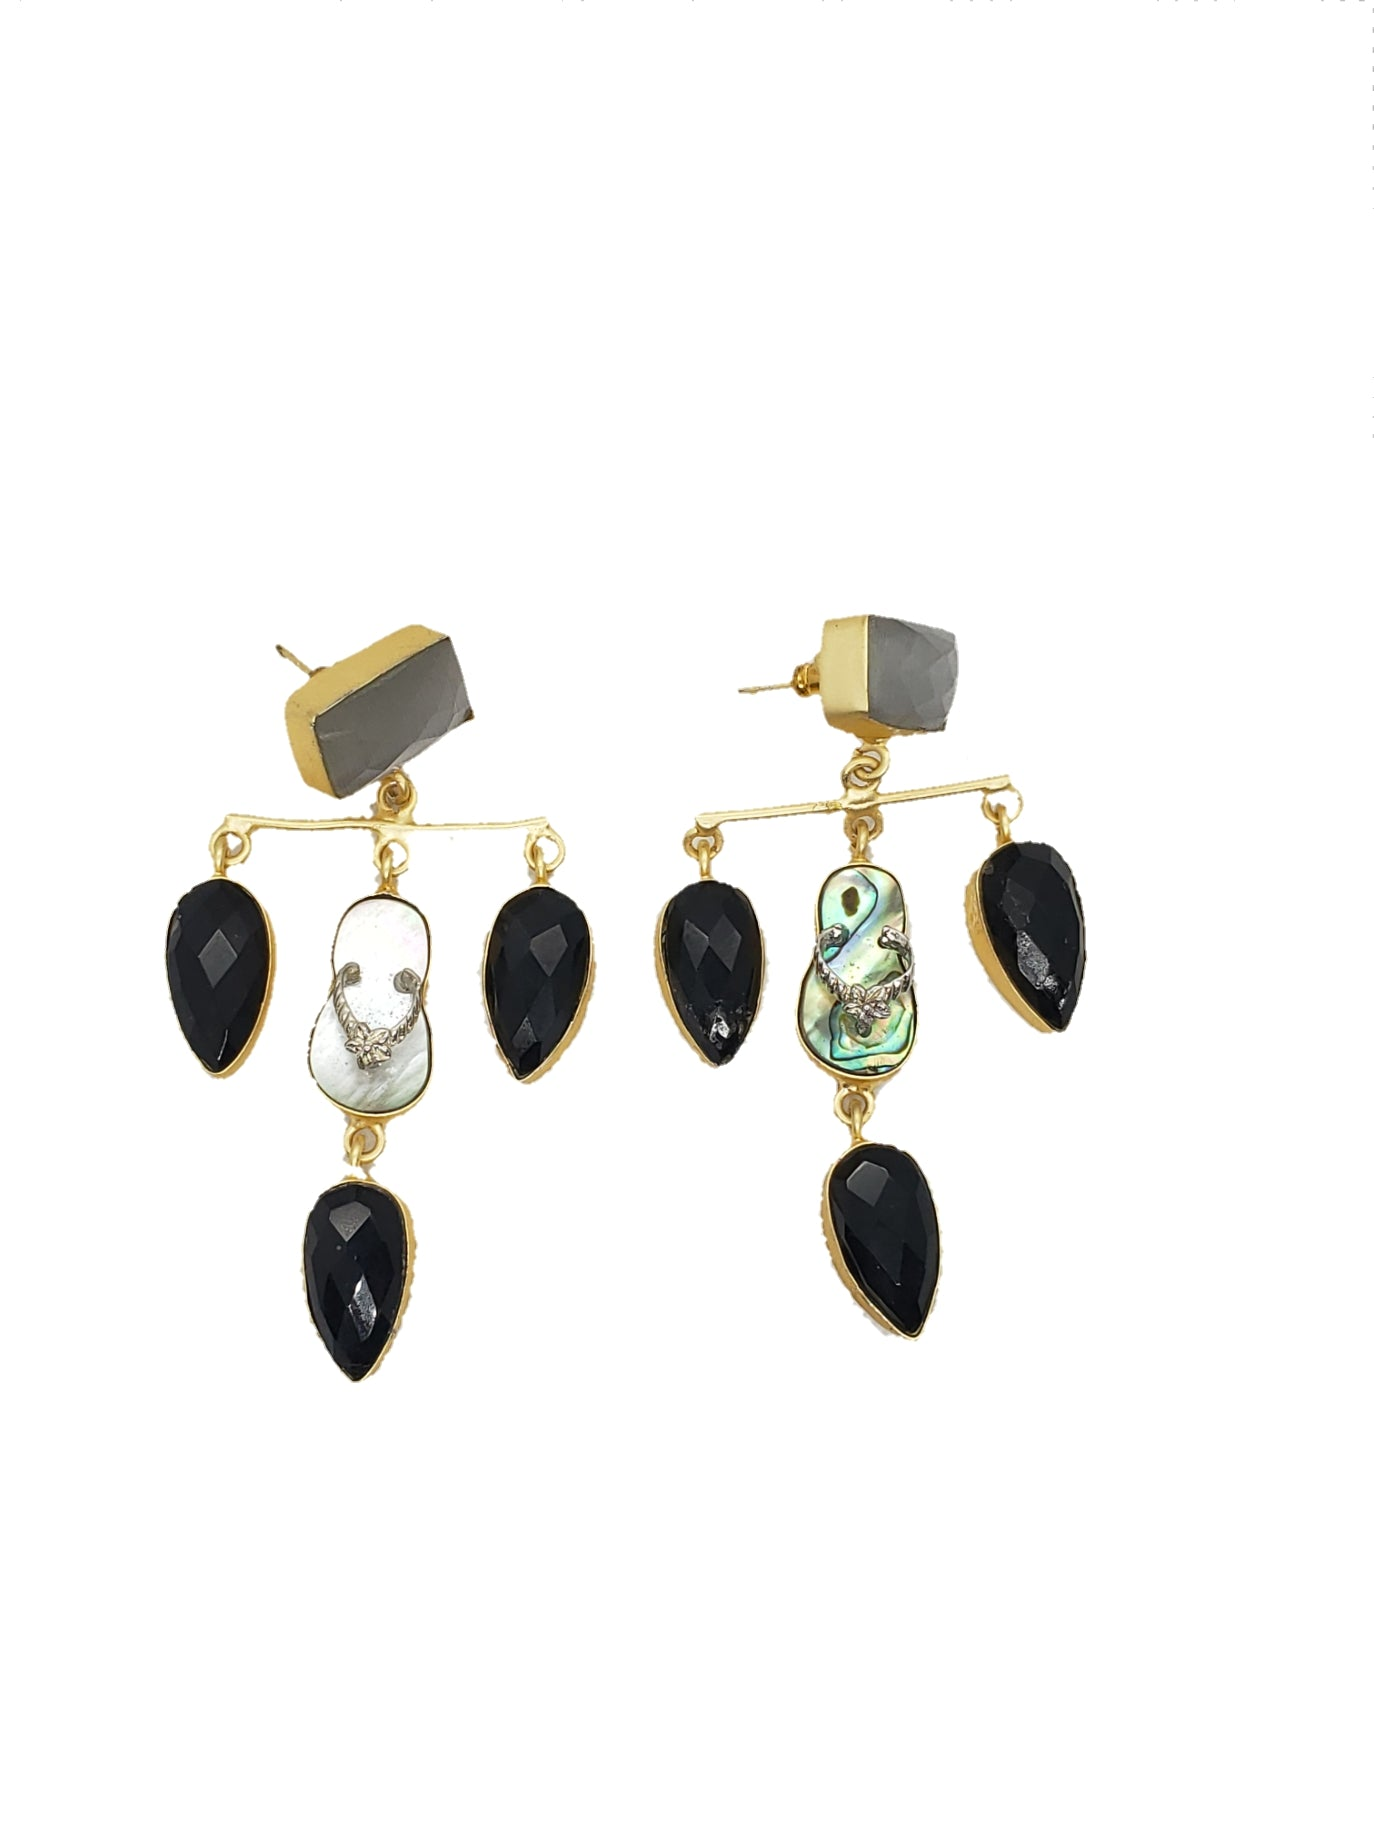 Slipper and Onyx Glass Earrings - The Bauble Shop